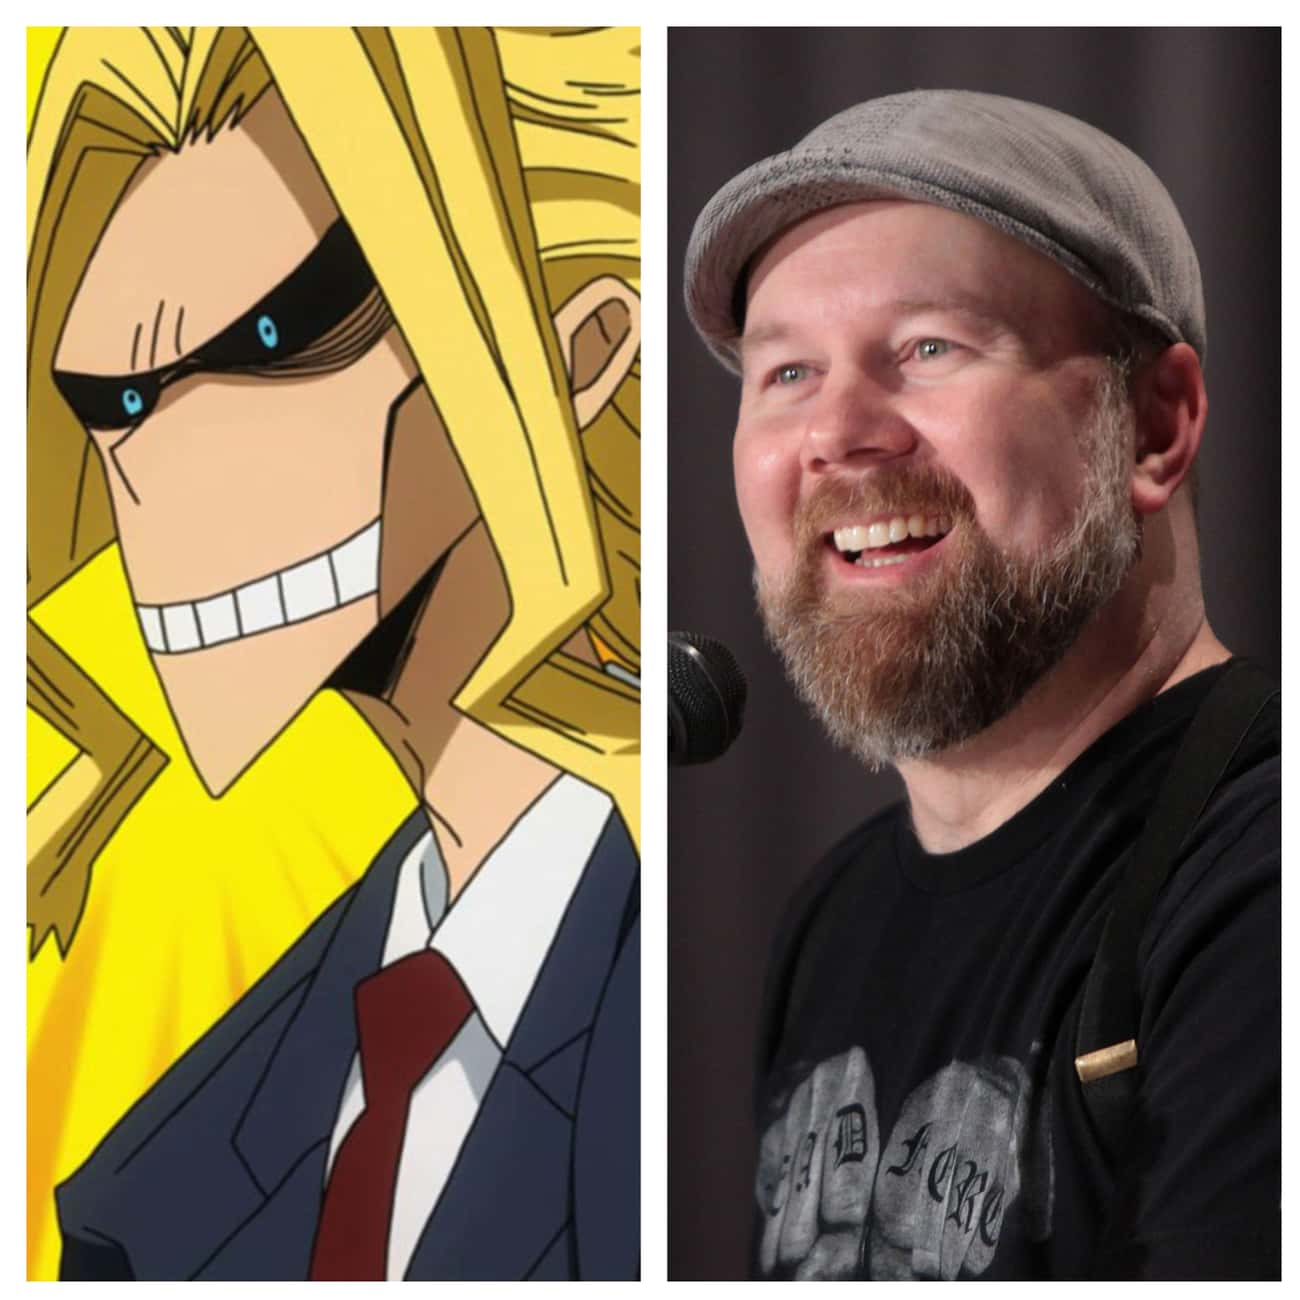 Christopher Sabat is listed (or ranked) 1 on the list The 15 Greatest English Anime Voice Actors Of All Time